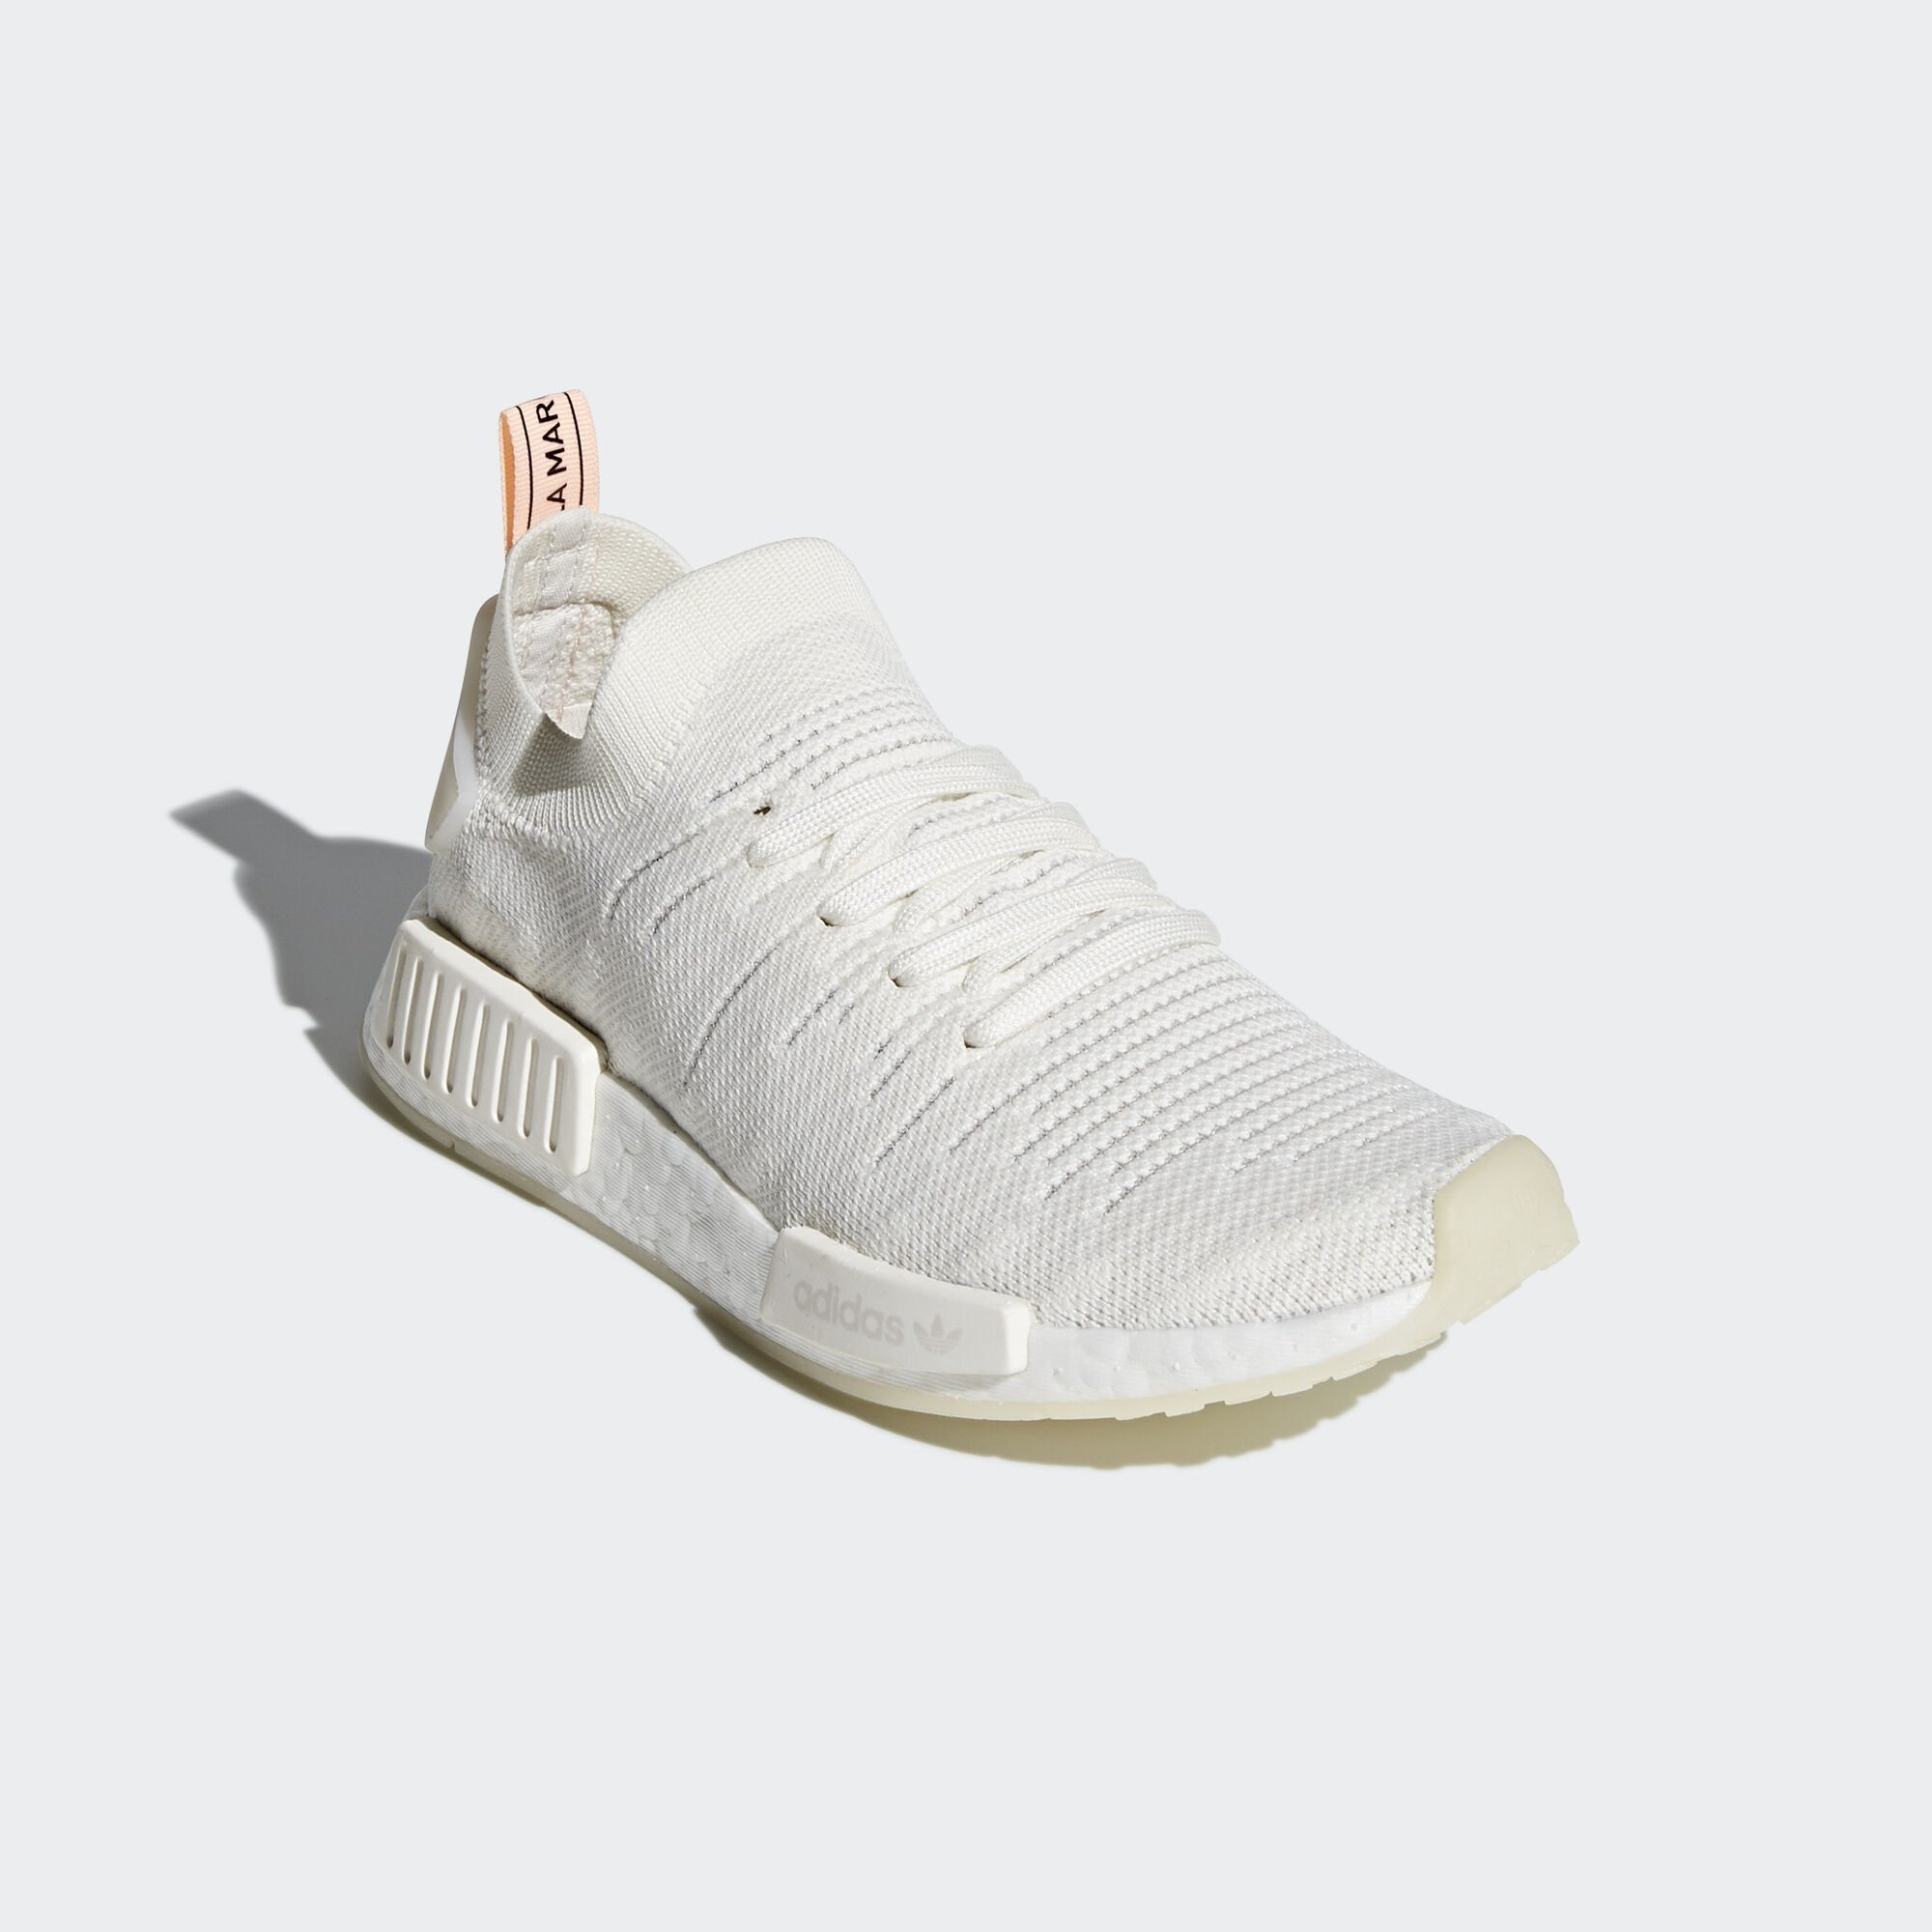 adidas  NMD R1 STLT Running White Clear Orange (W) (B37655)